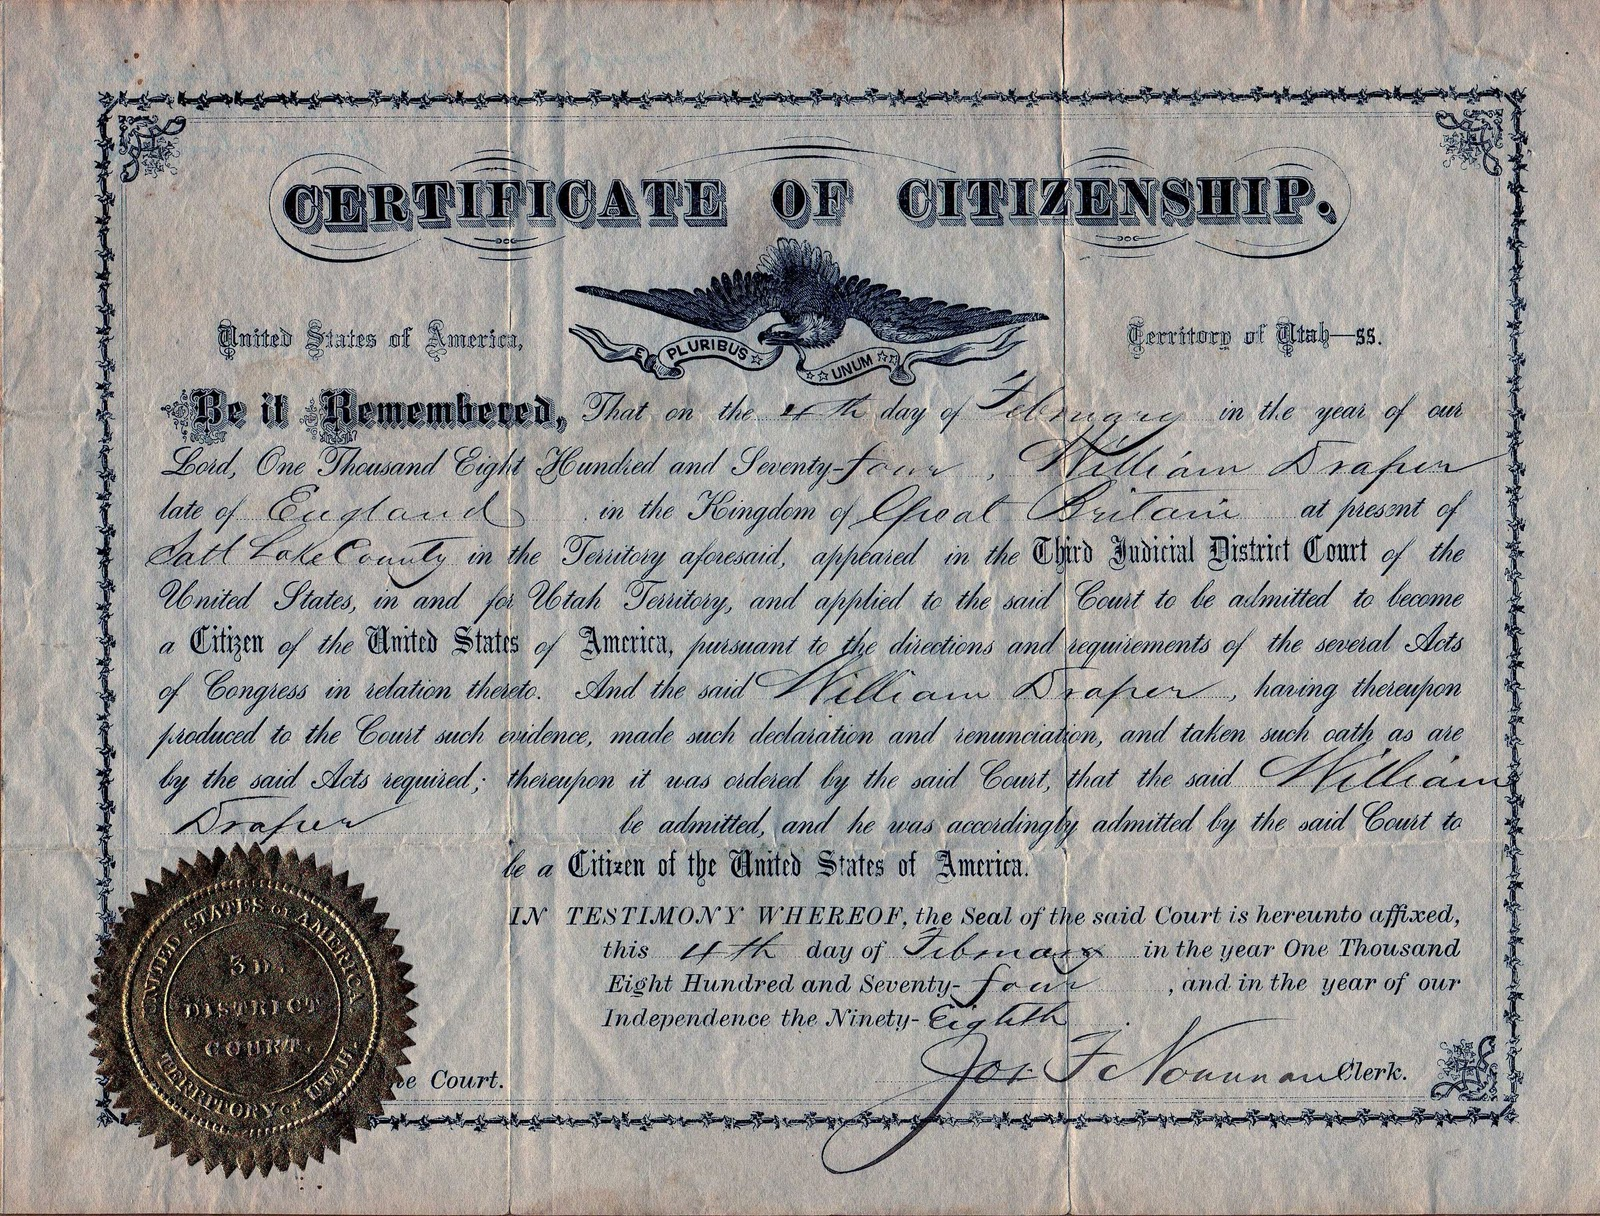 http://4.bp.blogspot.com/_SkXhcwXuE0w/TSSeT3SyUOI/AAAAAAAAAX4/z91vWvX4pgE/s1600/Certificate+of+Citizenship+for+William+Draper+%2528father+of+George+Henry%2529.jpg